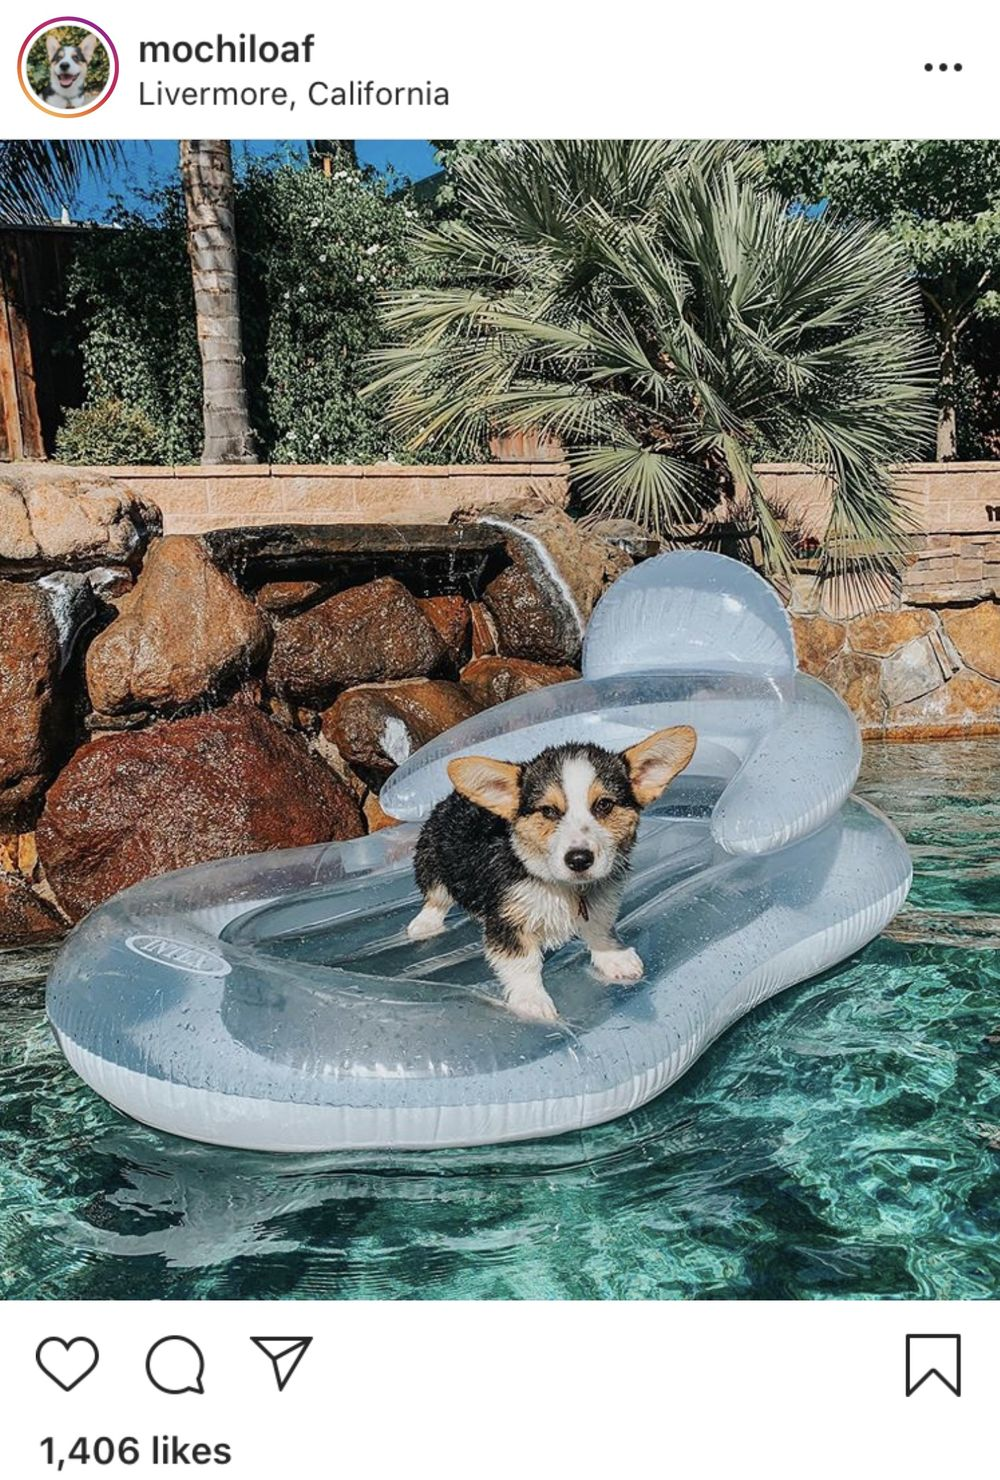 Dog Influencers Take Over Instagram After Pandemic Puppy Boom Bloomberg